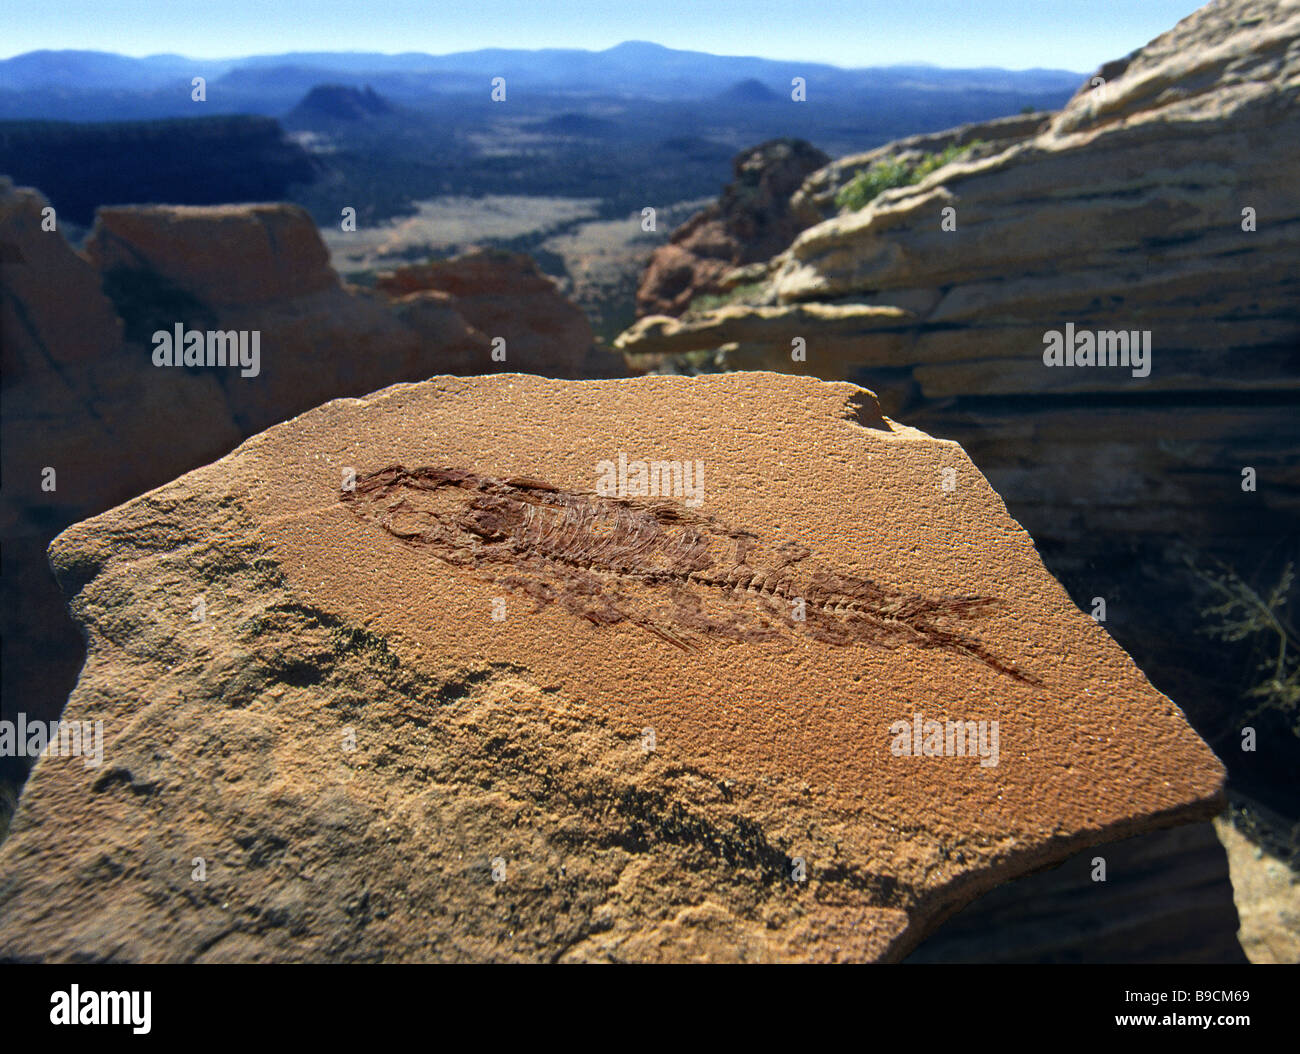 Fossil of a small 4 fish shown in a setting of stratified rock in Arizona - Stock Image